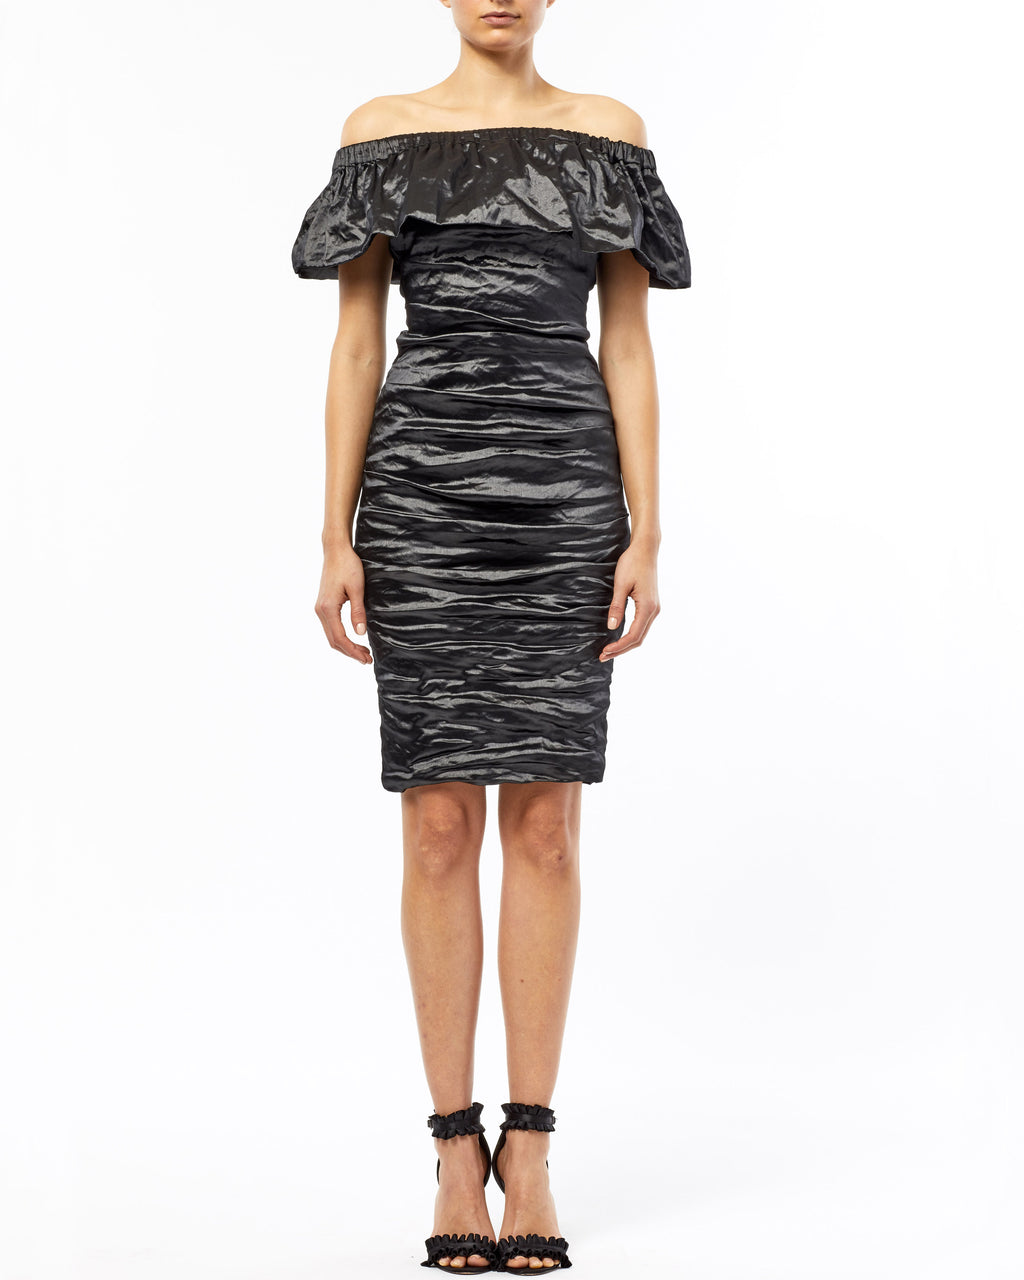 CD10073 - TECHNO METAL OFF SHOULDER RUCHED DRESS - samples - dresses - Techno metal meets office party. This off the shoulder dress emanates a queenly attitude: the cinched waist and ruched fabric are reigning details. Back zipper for closure. Final Sale